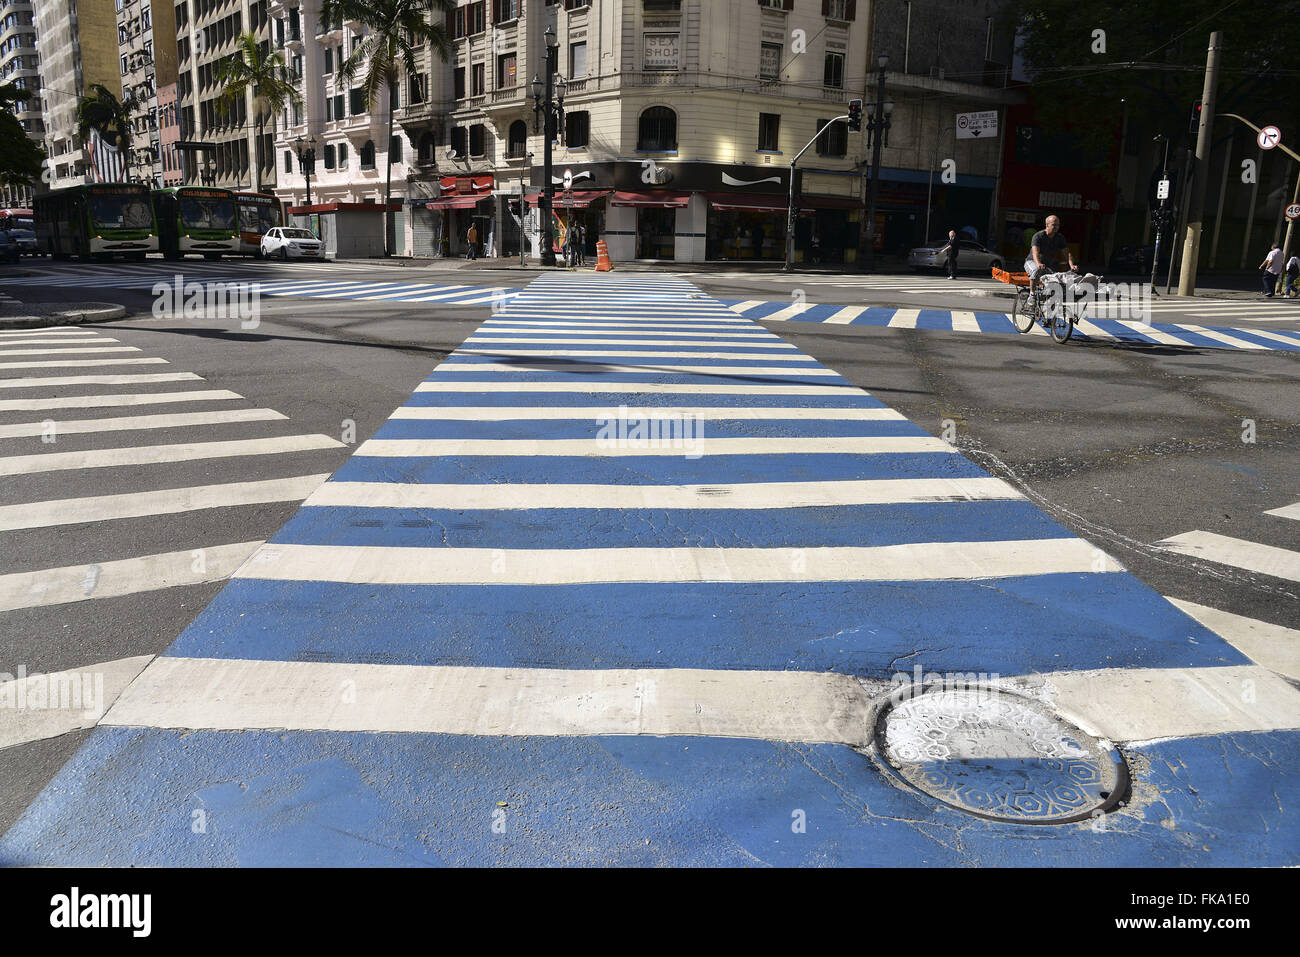 Pedestrian crossing diagonally at the intersection of Ipiranga and São João avenues - Stock Image